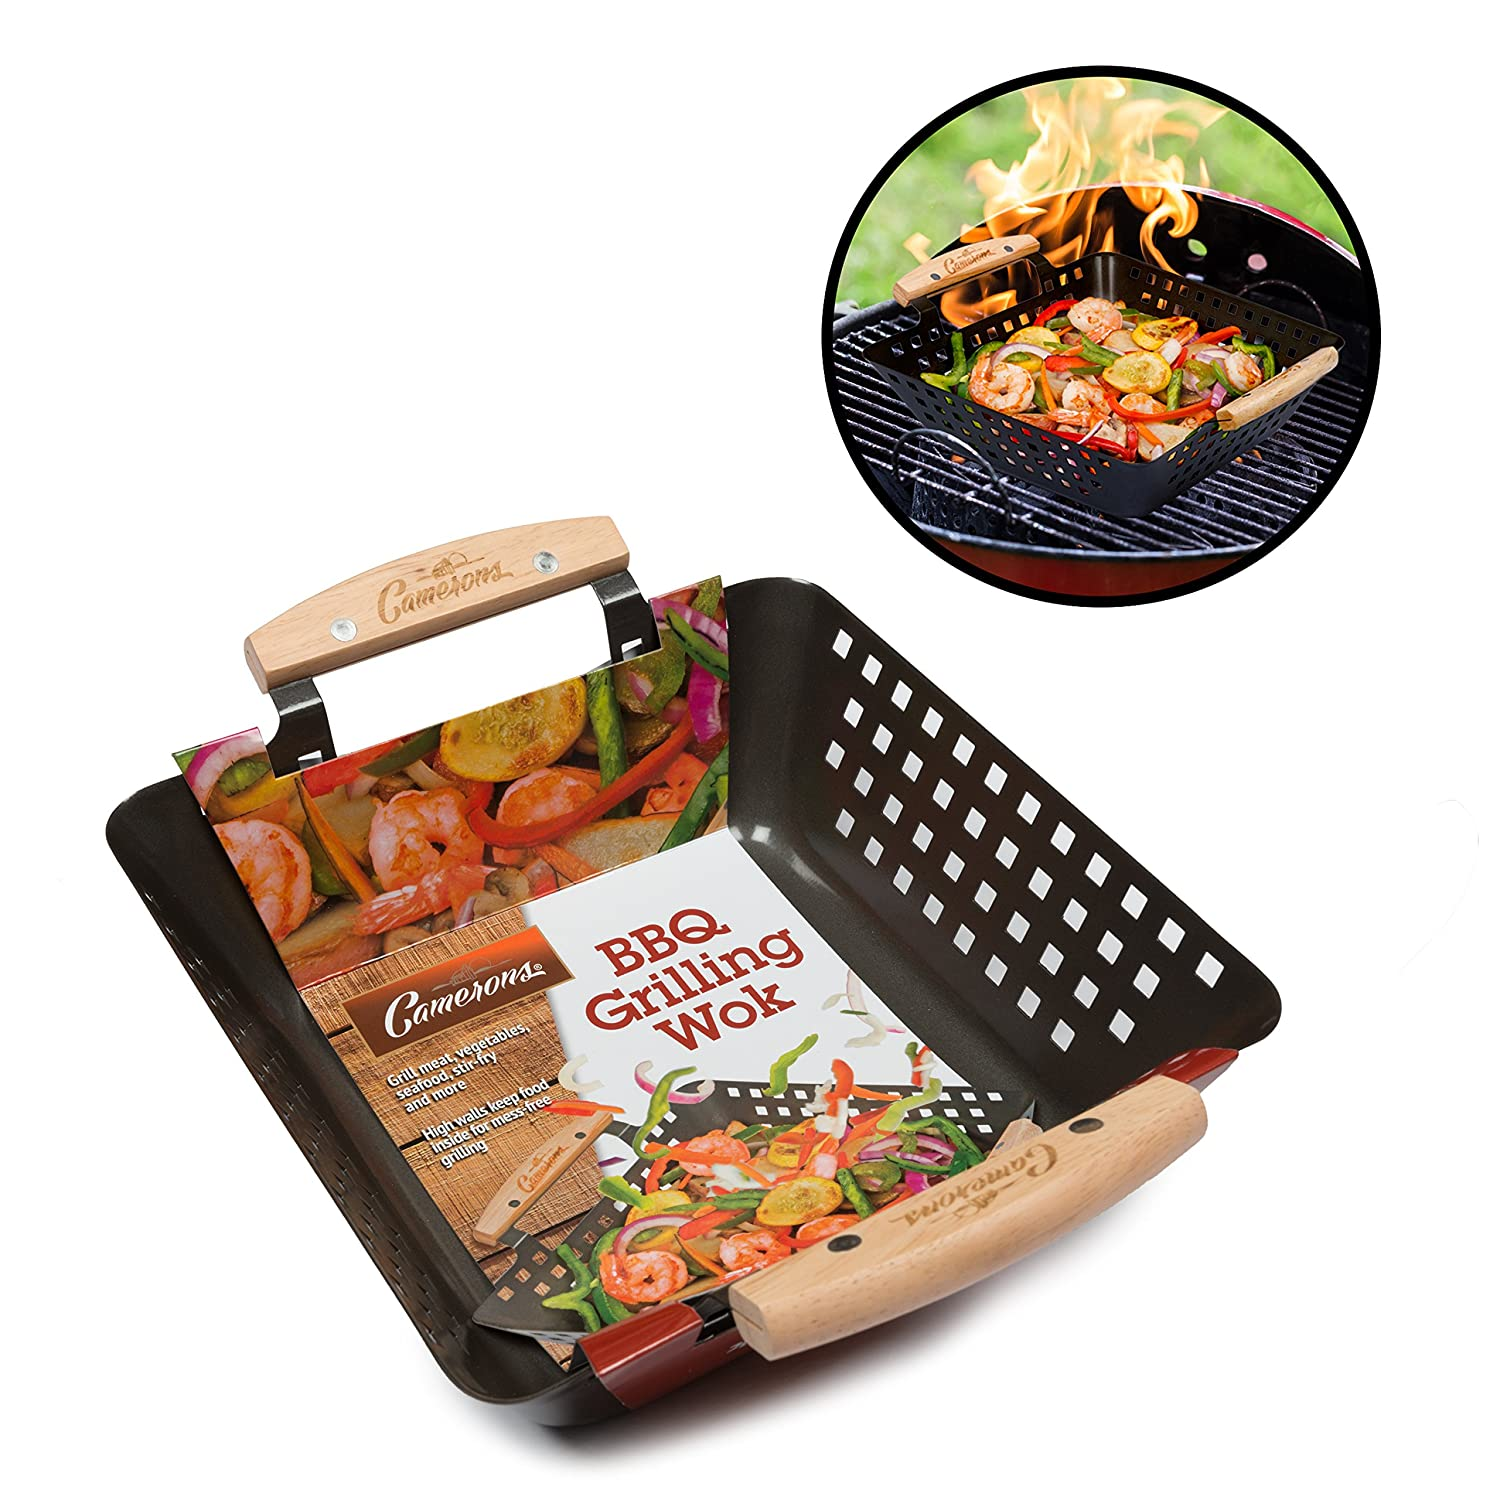 Grill Wok Basket- Barbecue Grilling Basket with 100% Non-Stick Coating and Heat-Resistant Handles by Camerons Camerons Products CAM-BGW-981